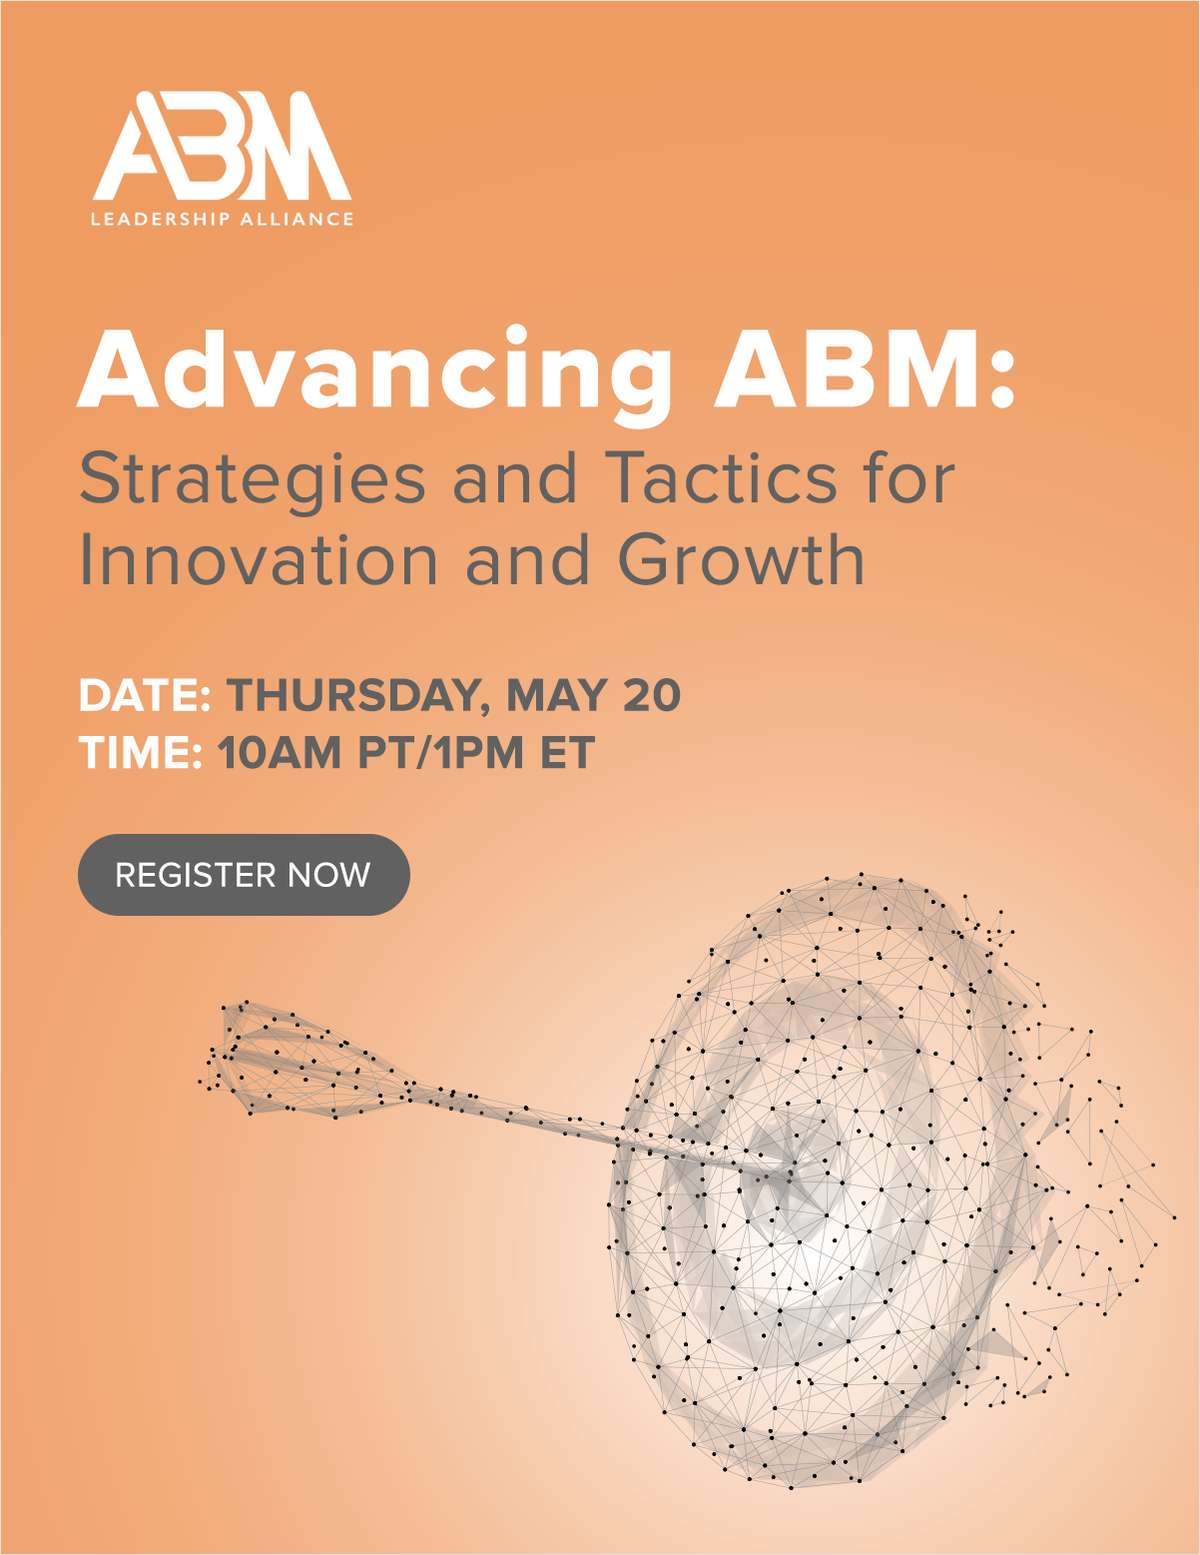 Advancing ABM: Strategies and Tactics for Innovation and Growth